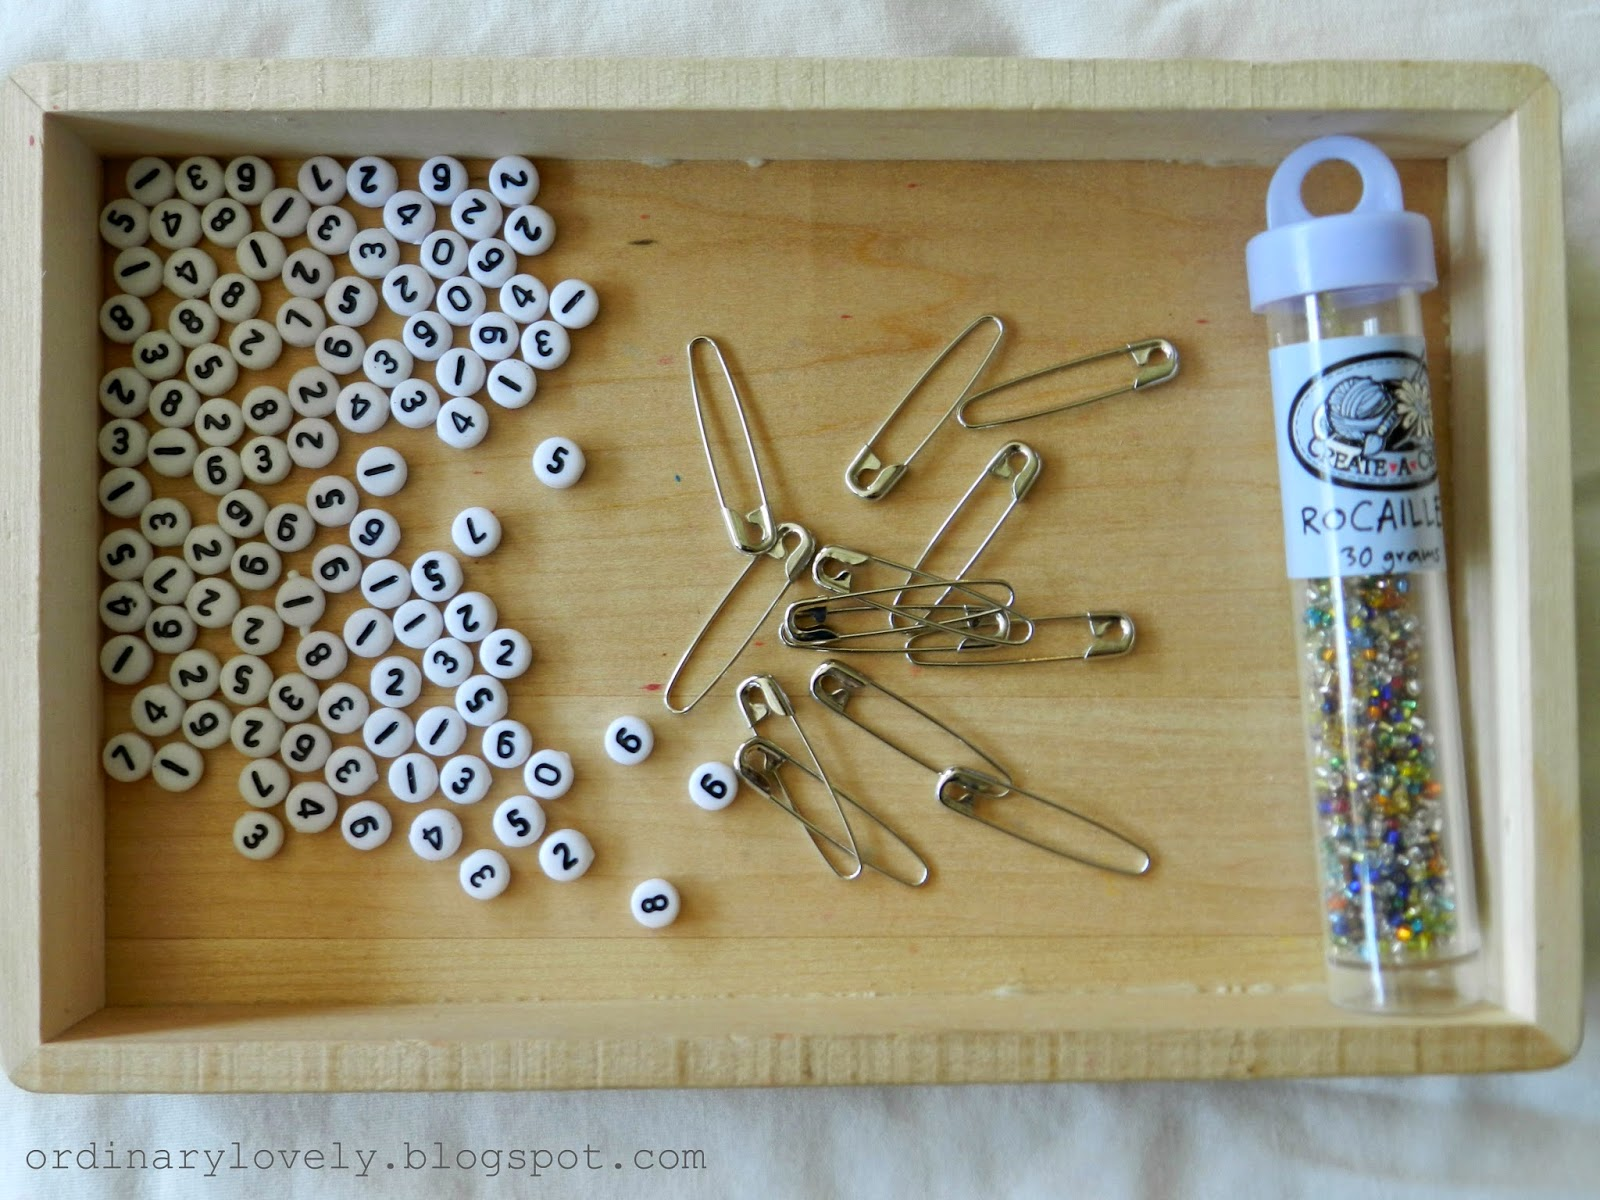 Ordinary Lovely Crochet Hook Size Reminders Best Idea Ever